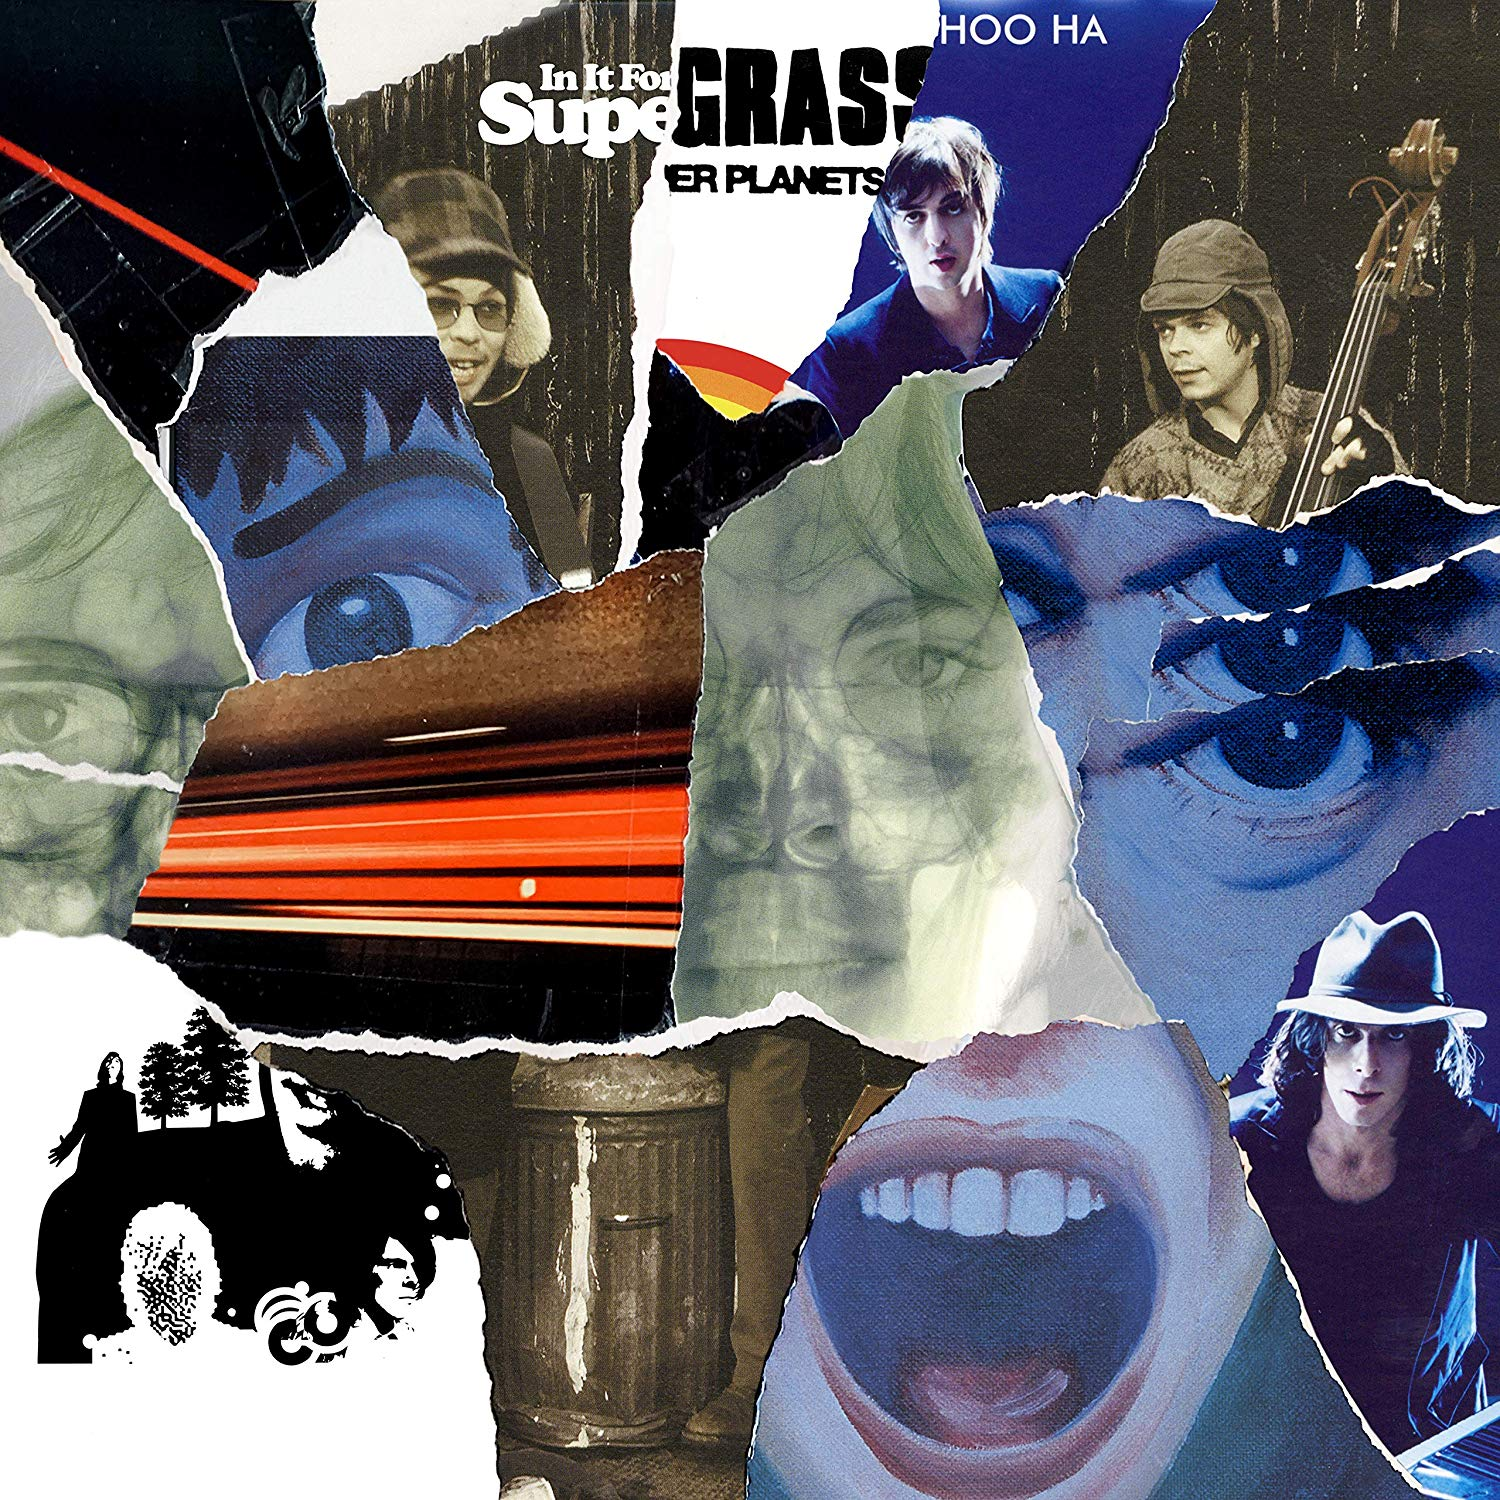 Supergrass - The Strange Ones: 1994-2008 [2xLP]